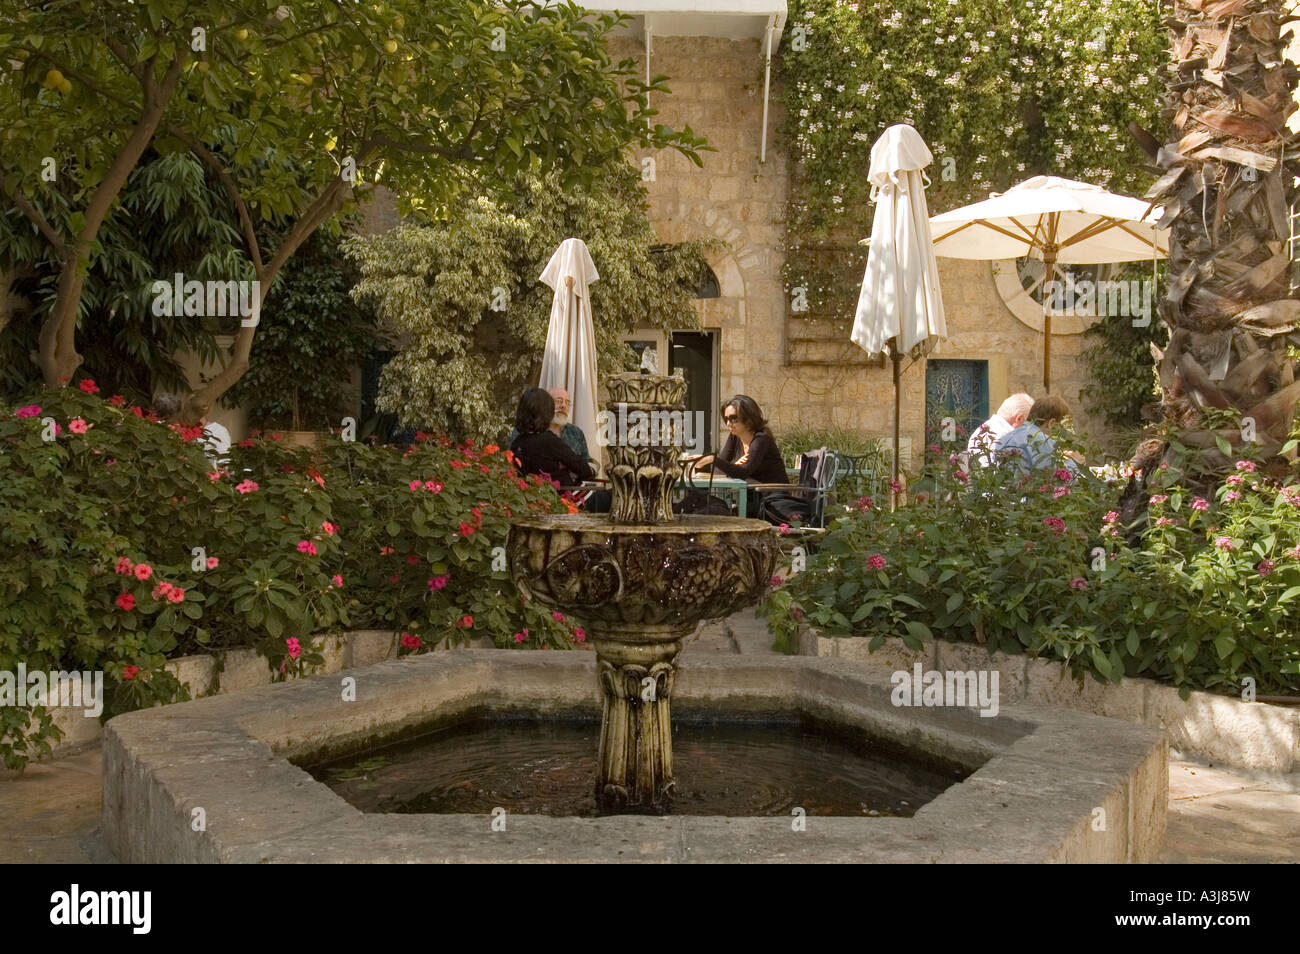 Inner courtyard of the American Colony hotel in East Jerusalem Israel - Stock Image